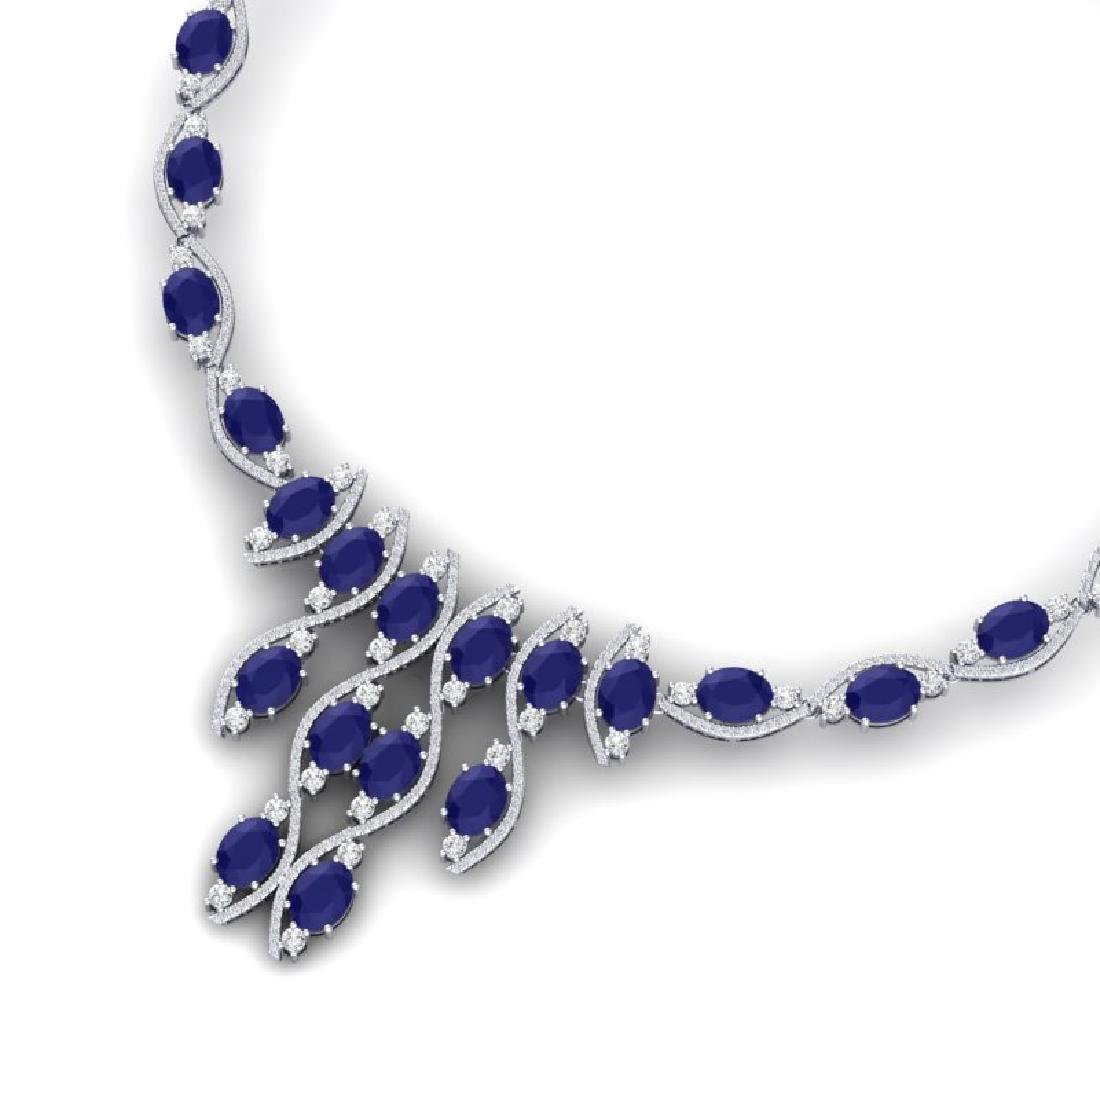 65.93 CTW Royalty Sapphire & VS Diamond Necklace 18K